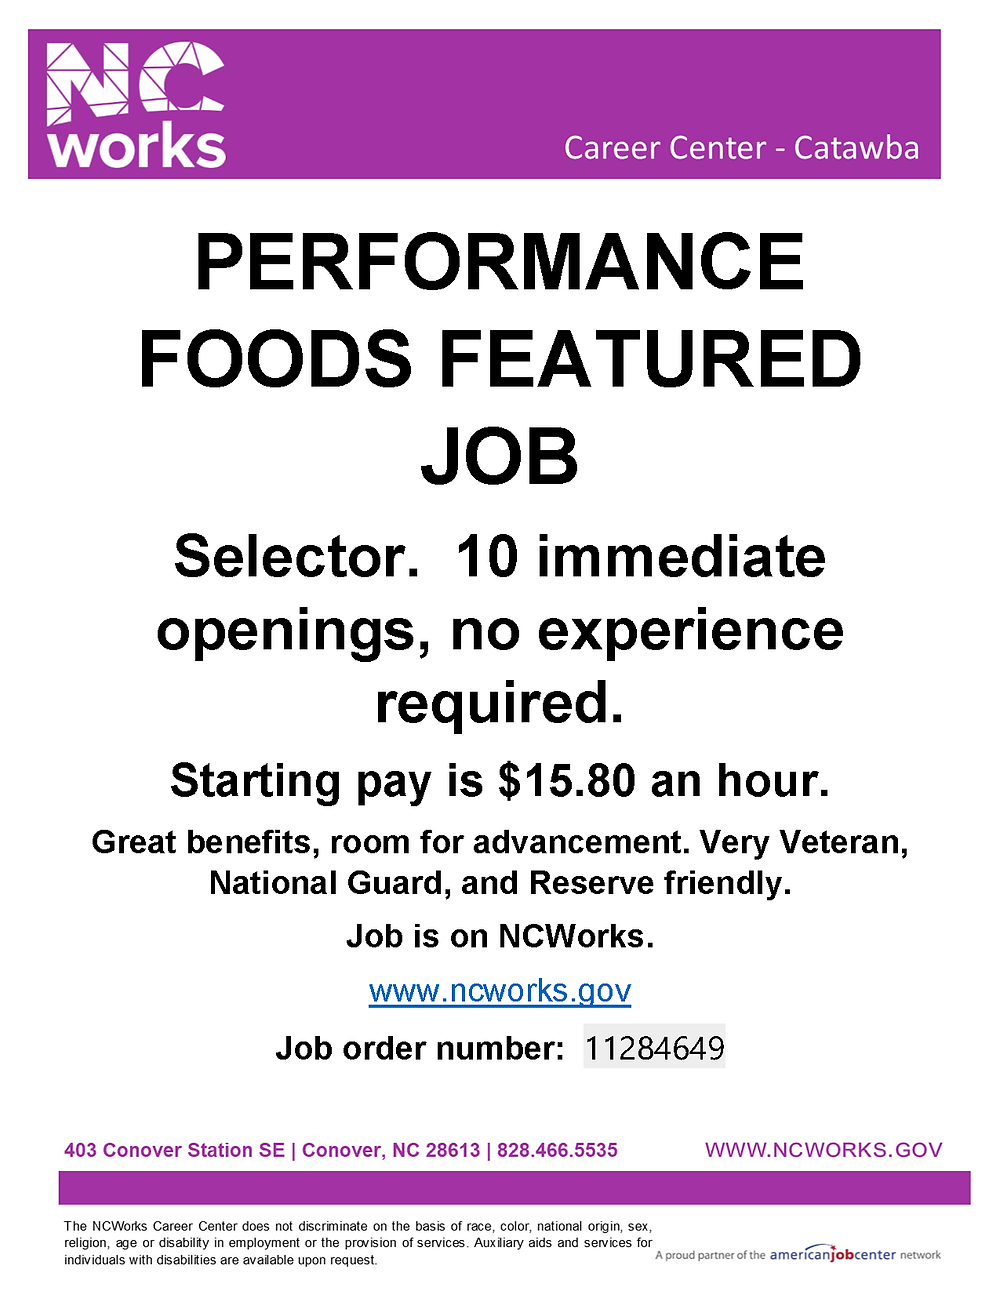 Jobs Hiring Now No Experience